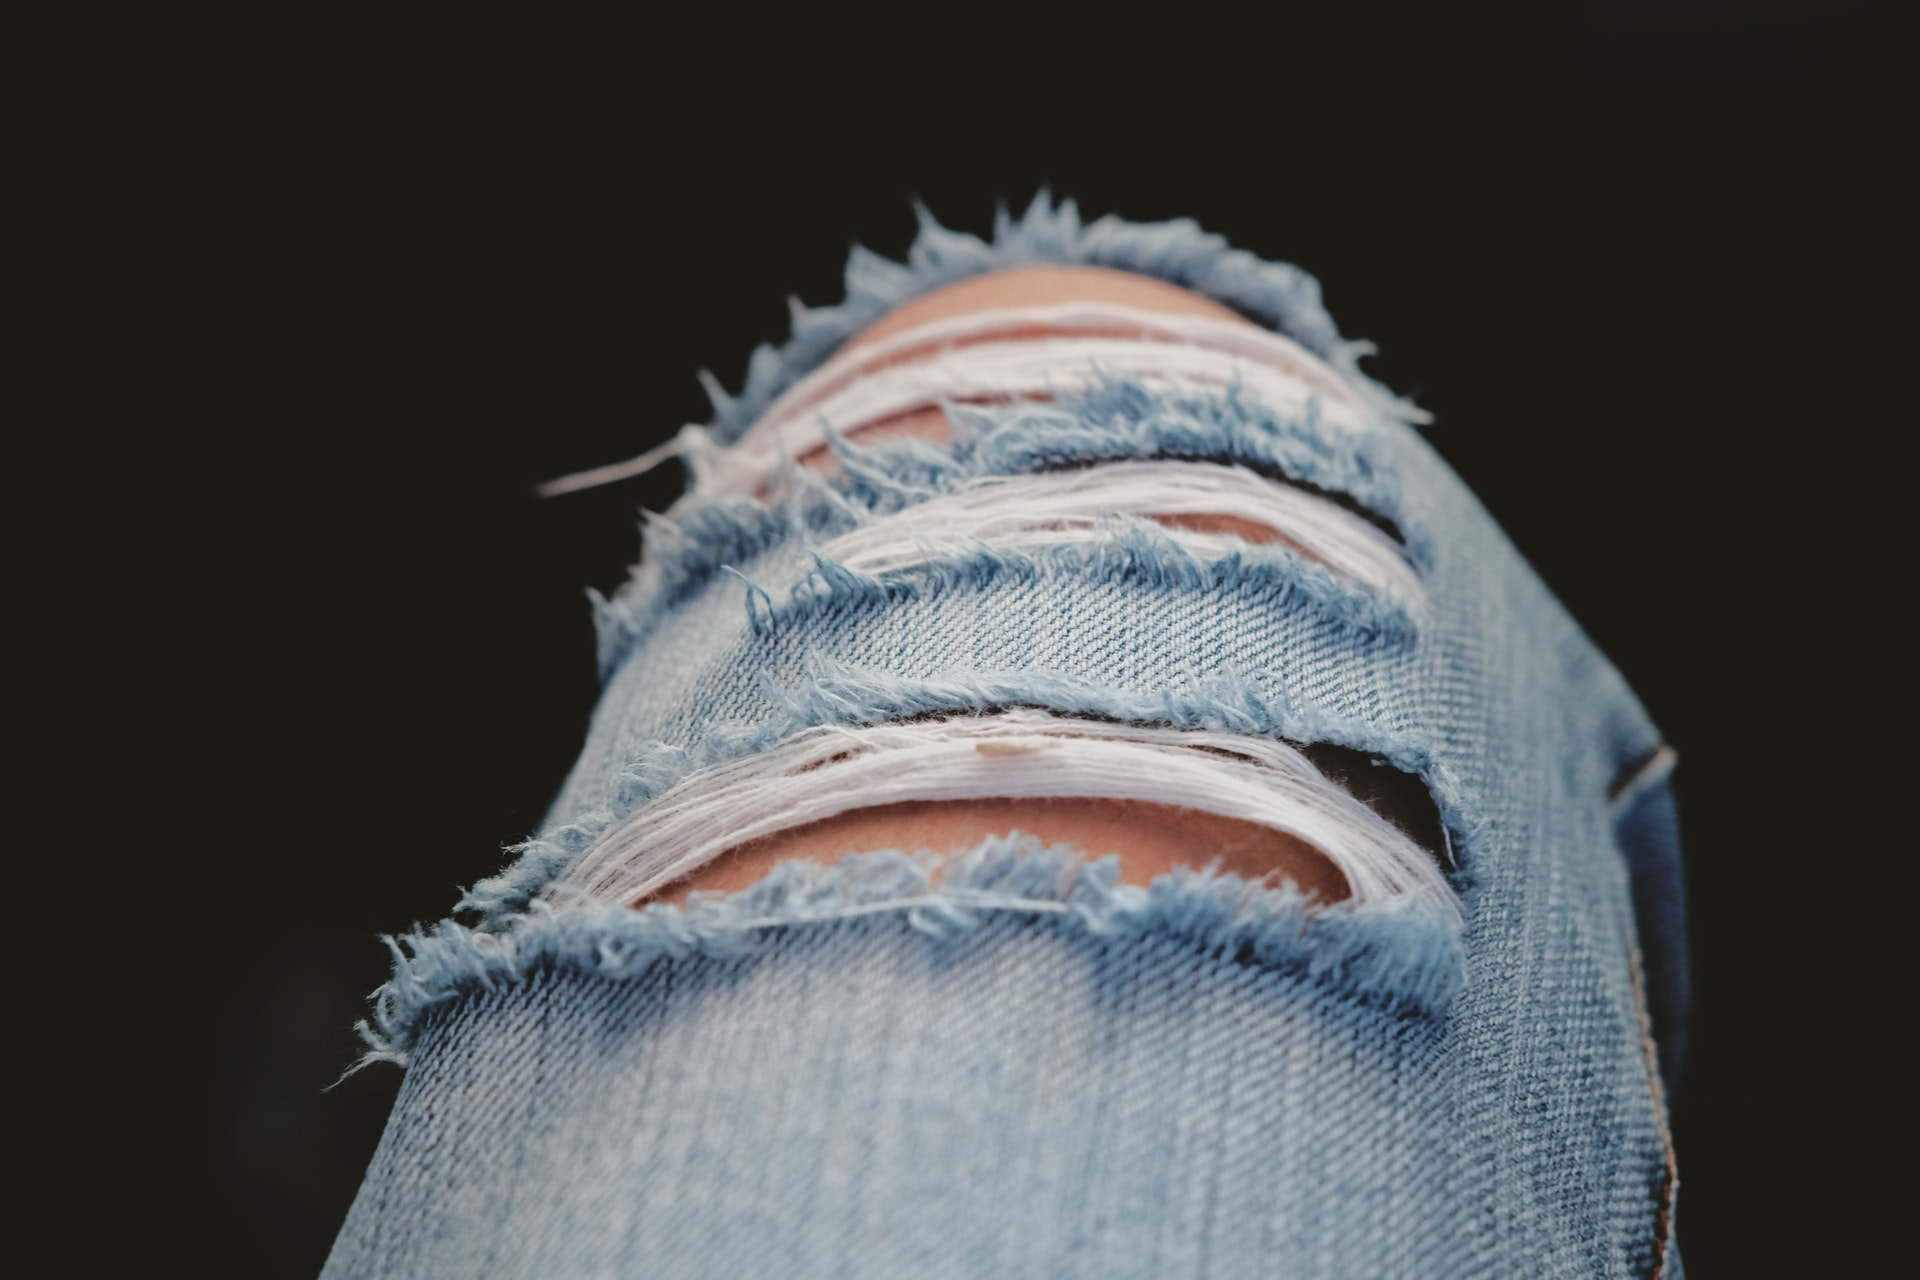 How to fix a tear in a shirt without sewing?